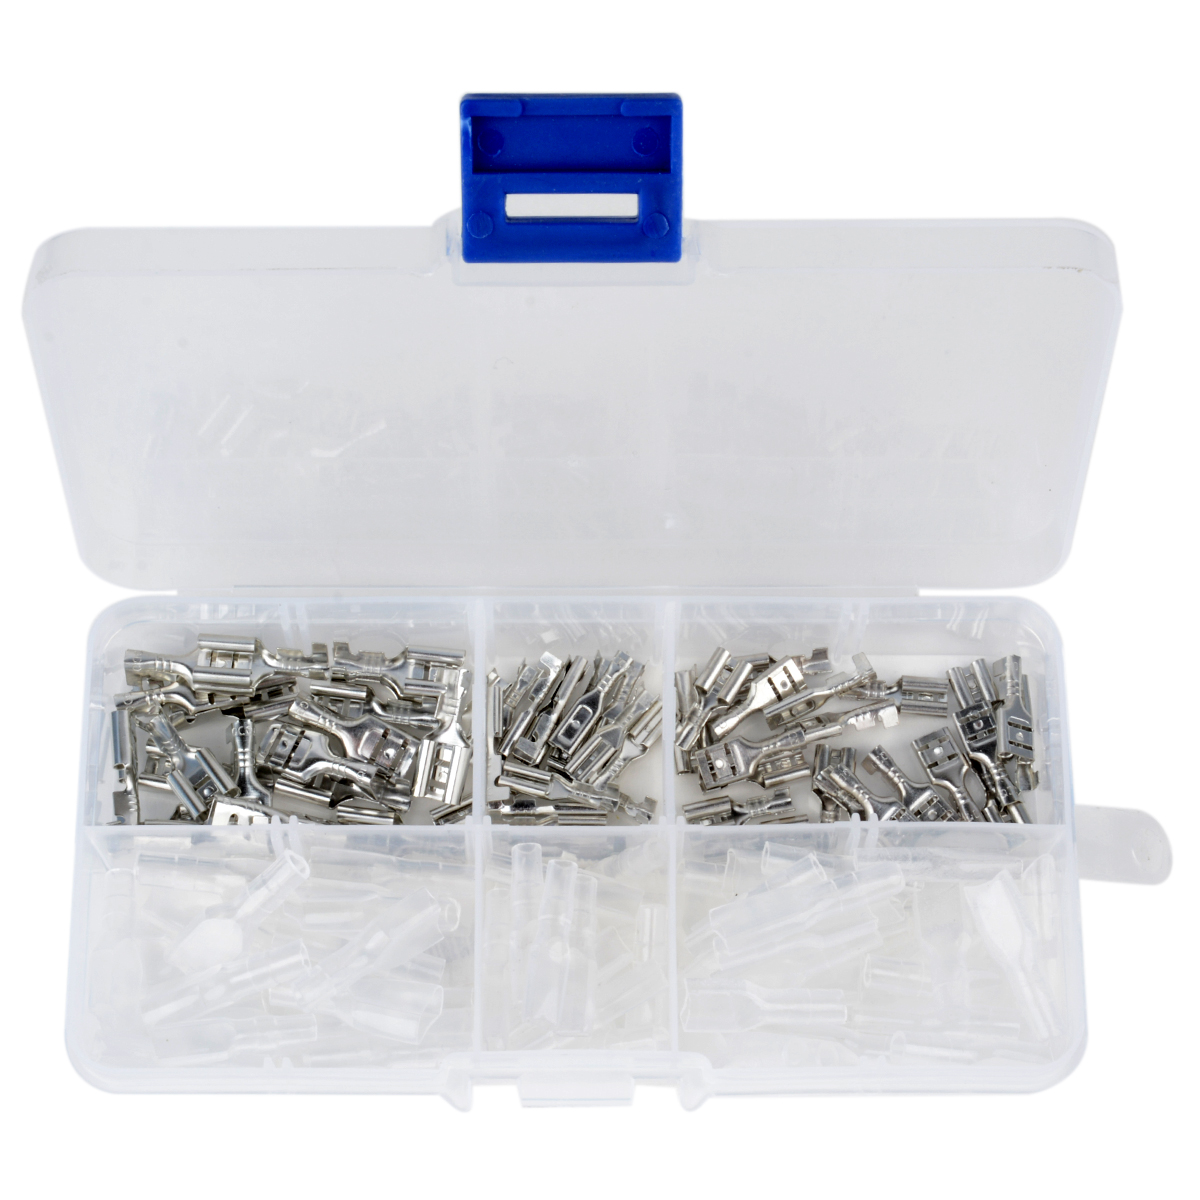 120pcs Set 2 8mm 4 8mm 6 3mm Female Spade Connectors High Quality Crimp Terminals with Insulating Sleeves in Terminals from Home Improvement